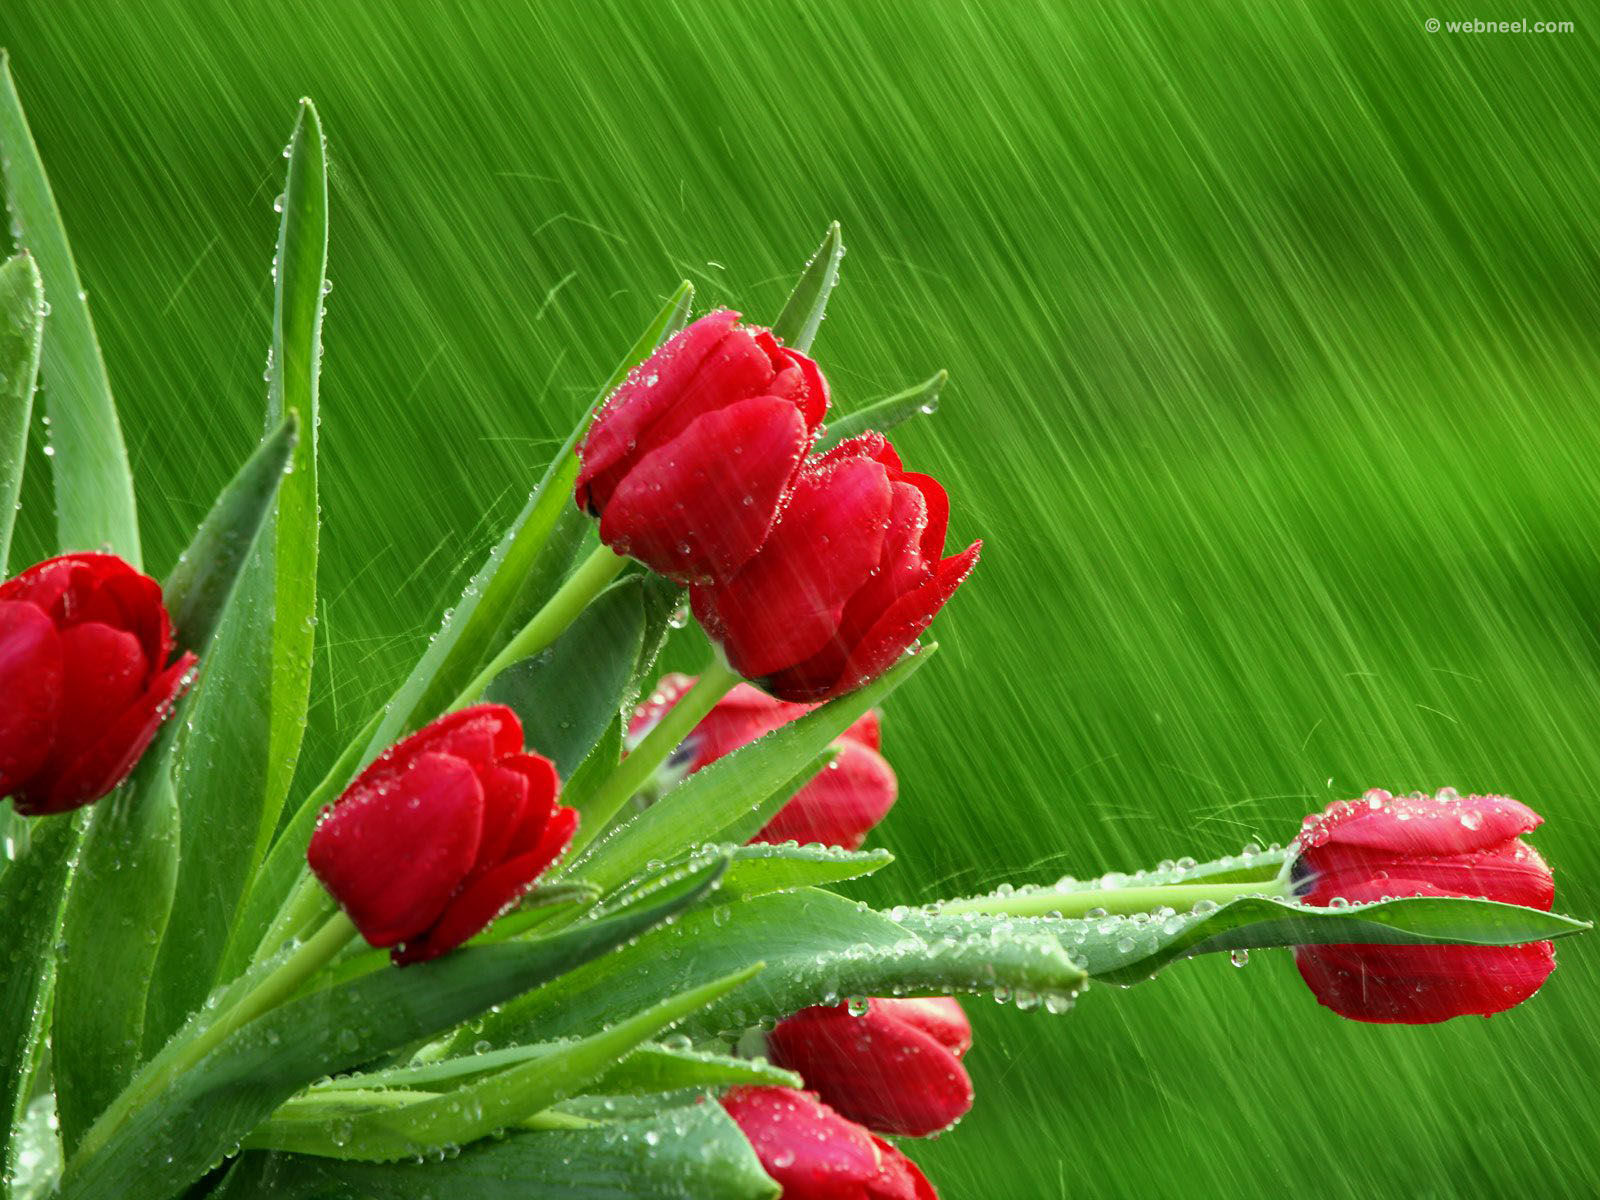 rain wallpaper flowers